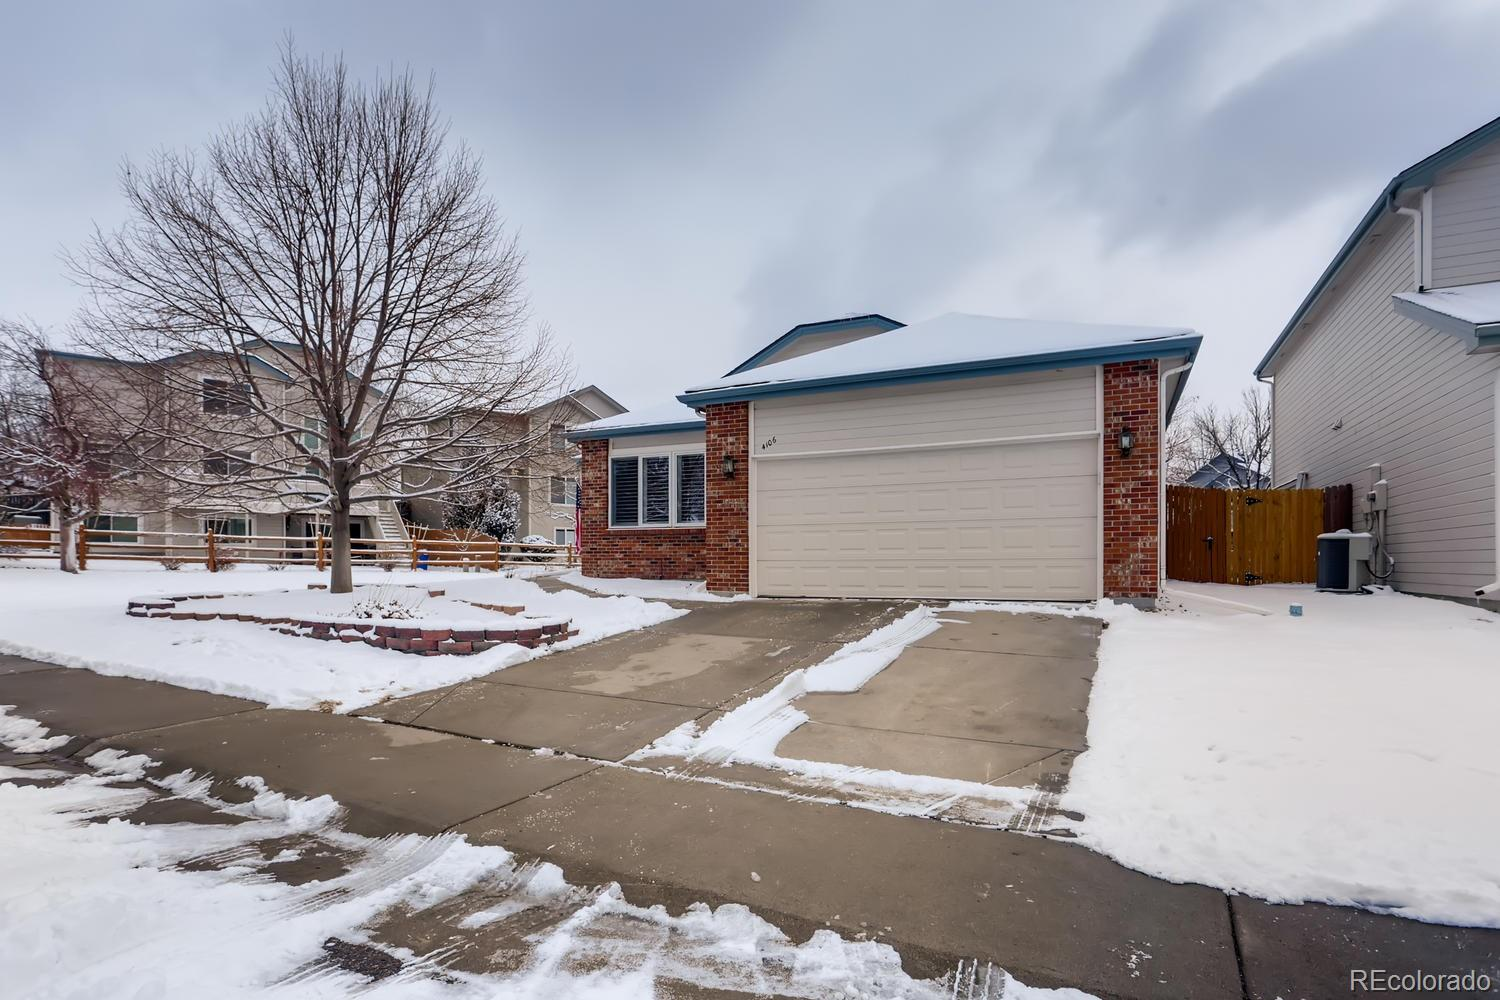 MLS# 3407296 - 3 - 4106 S Granby Circle, Aurora, CO 80014